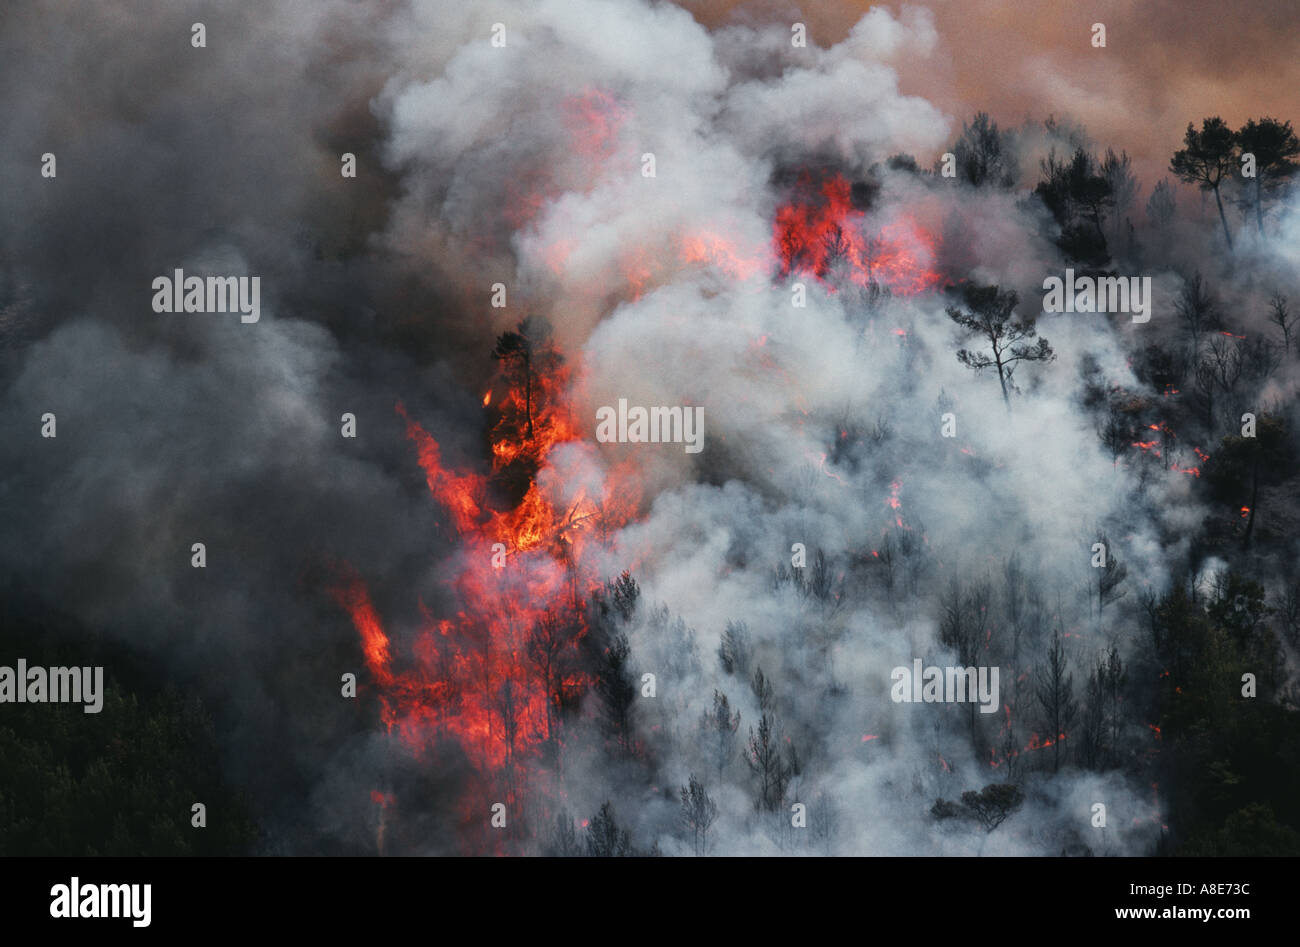 Aerial view of a wildfire and smoke near Cassis, Provence, France, Europe, - Stock Image